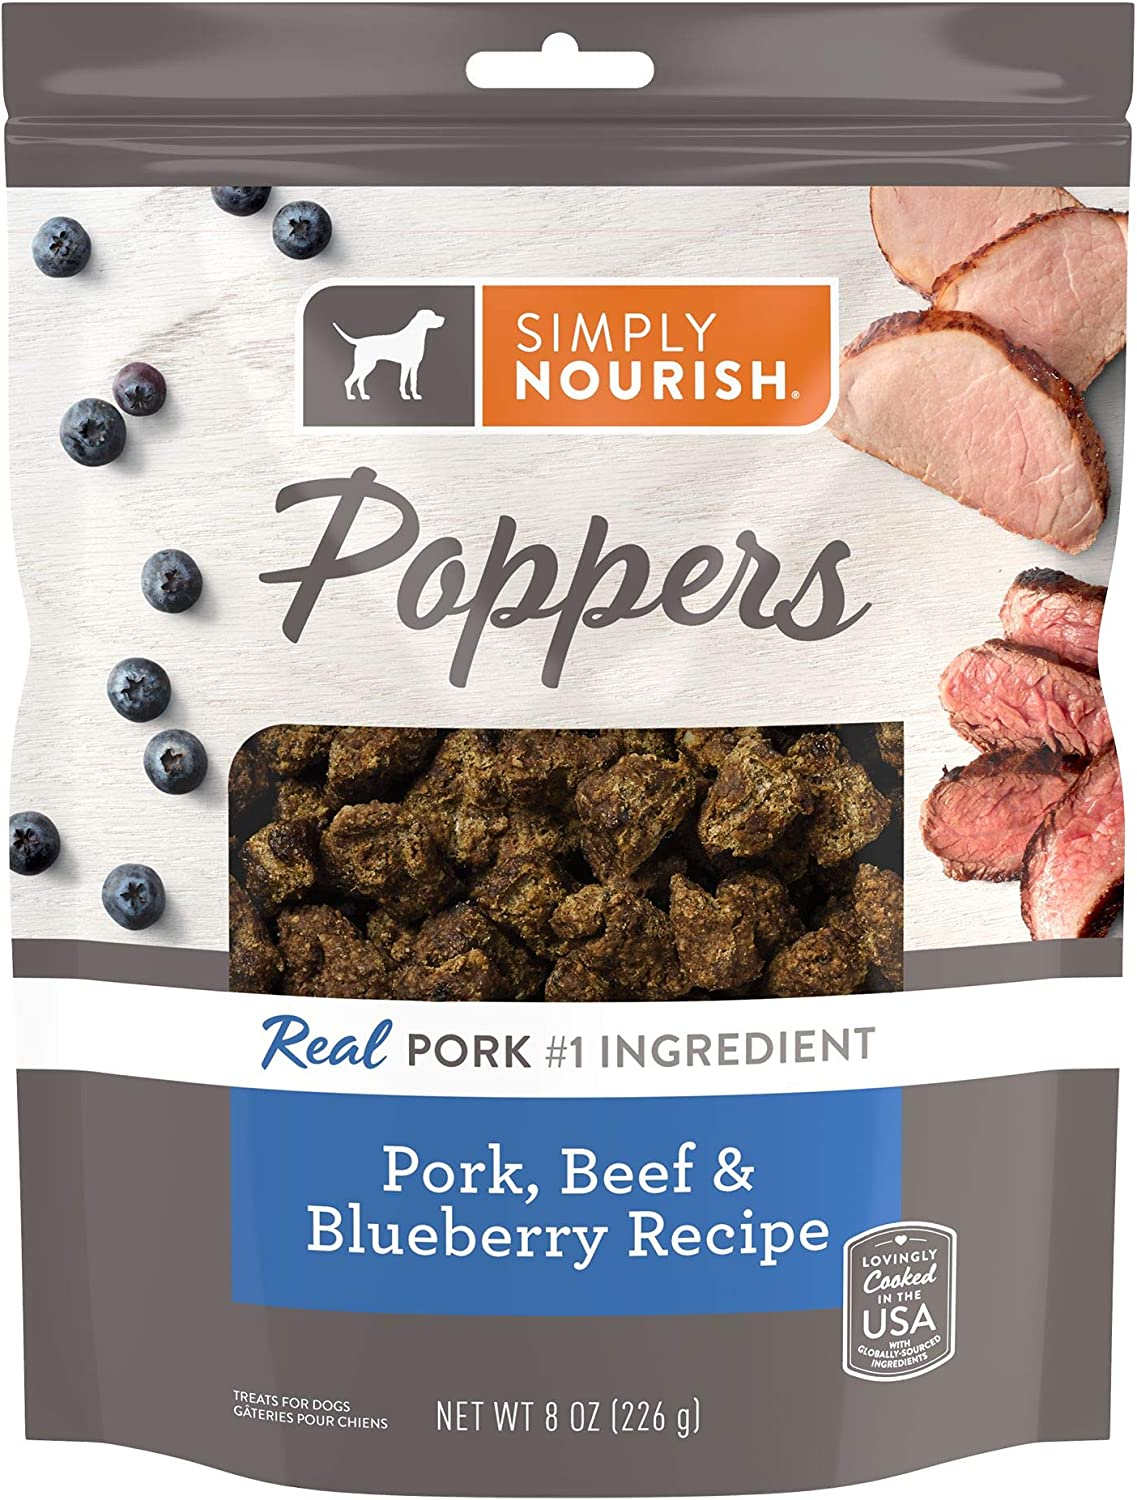 SIMPLY NOURISH Poppers Dog Treats - Pork, Beef & Blueberry Recipe (1) 8 OZ Resealable Bag